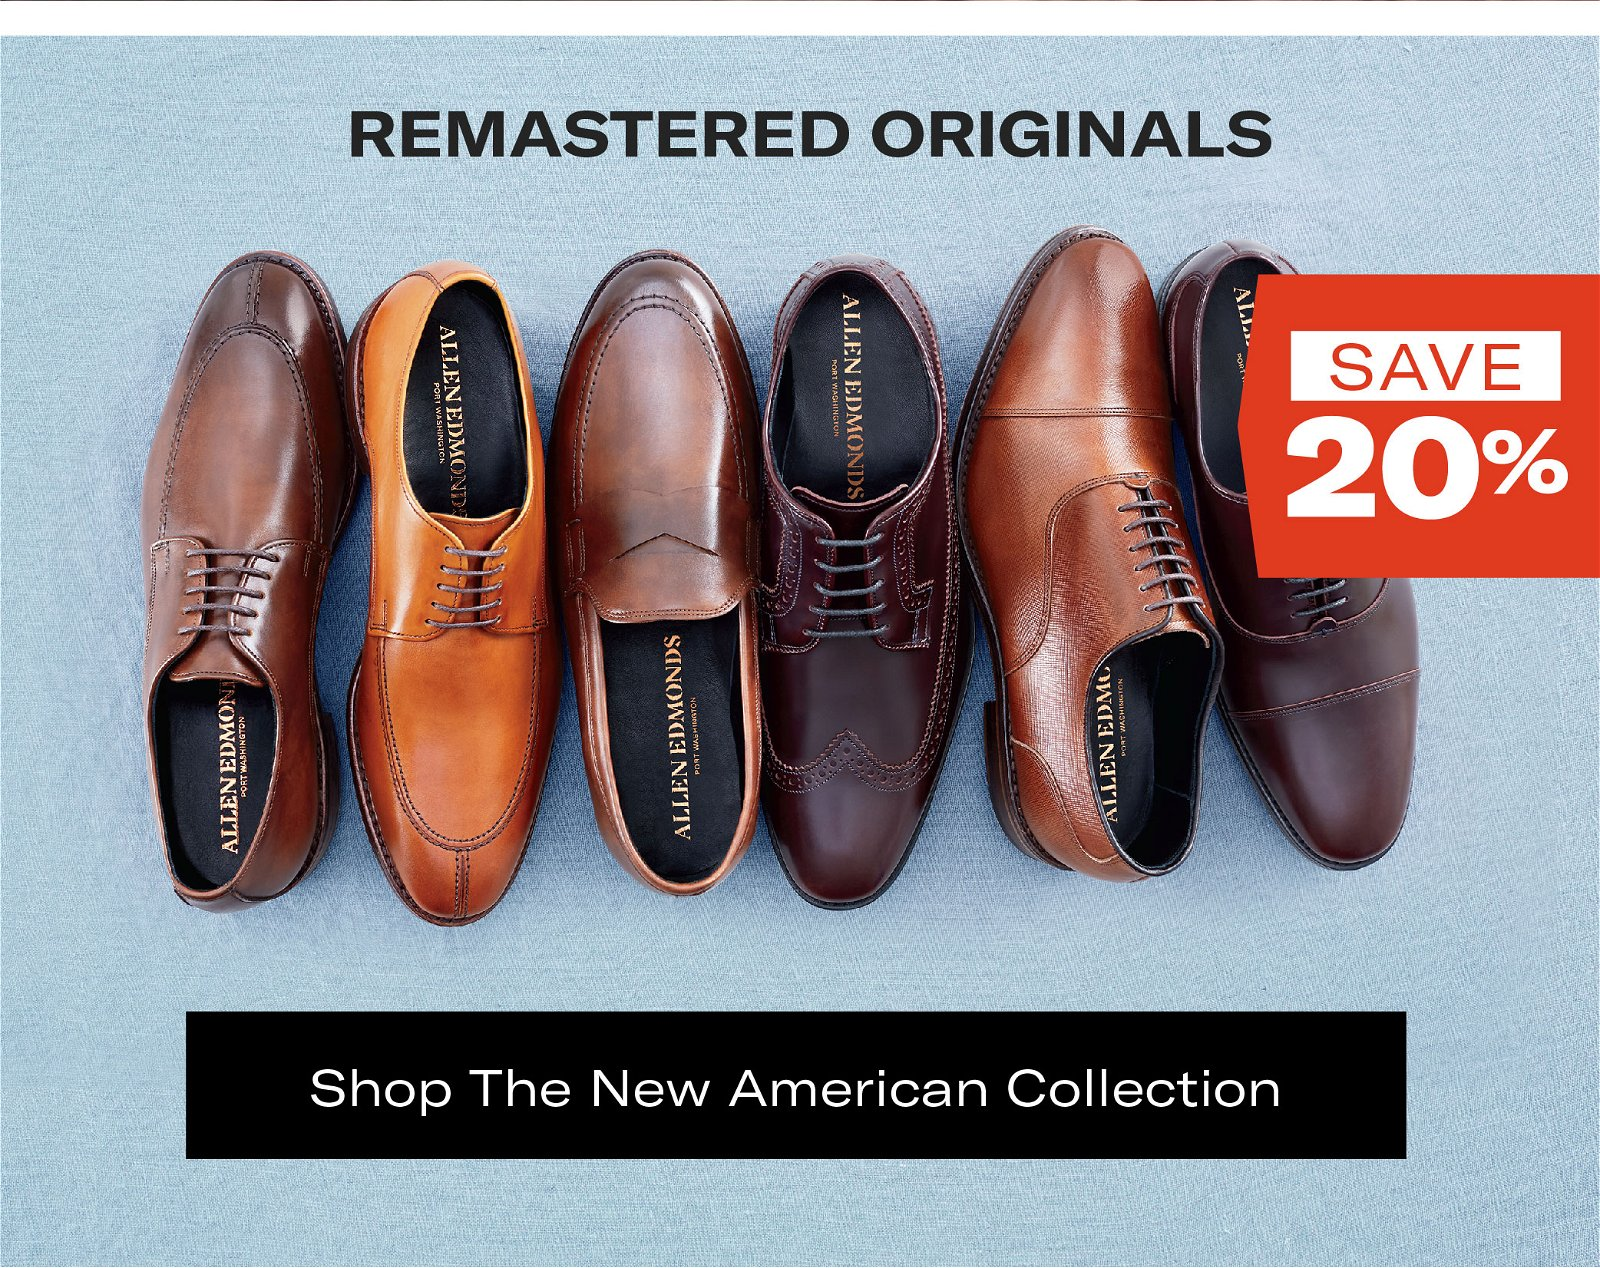 Save 20% on the New Americans Collection